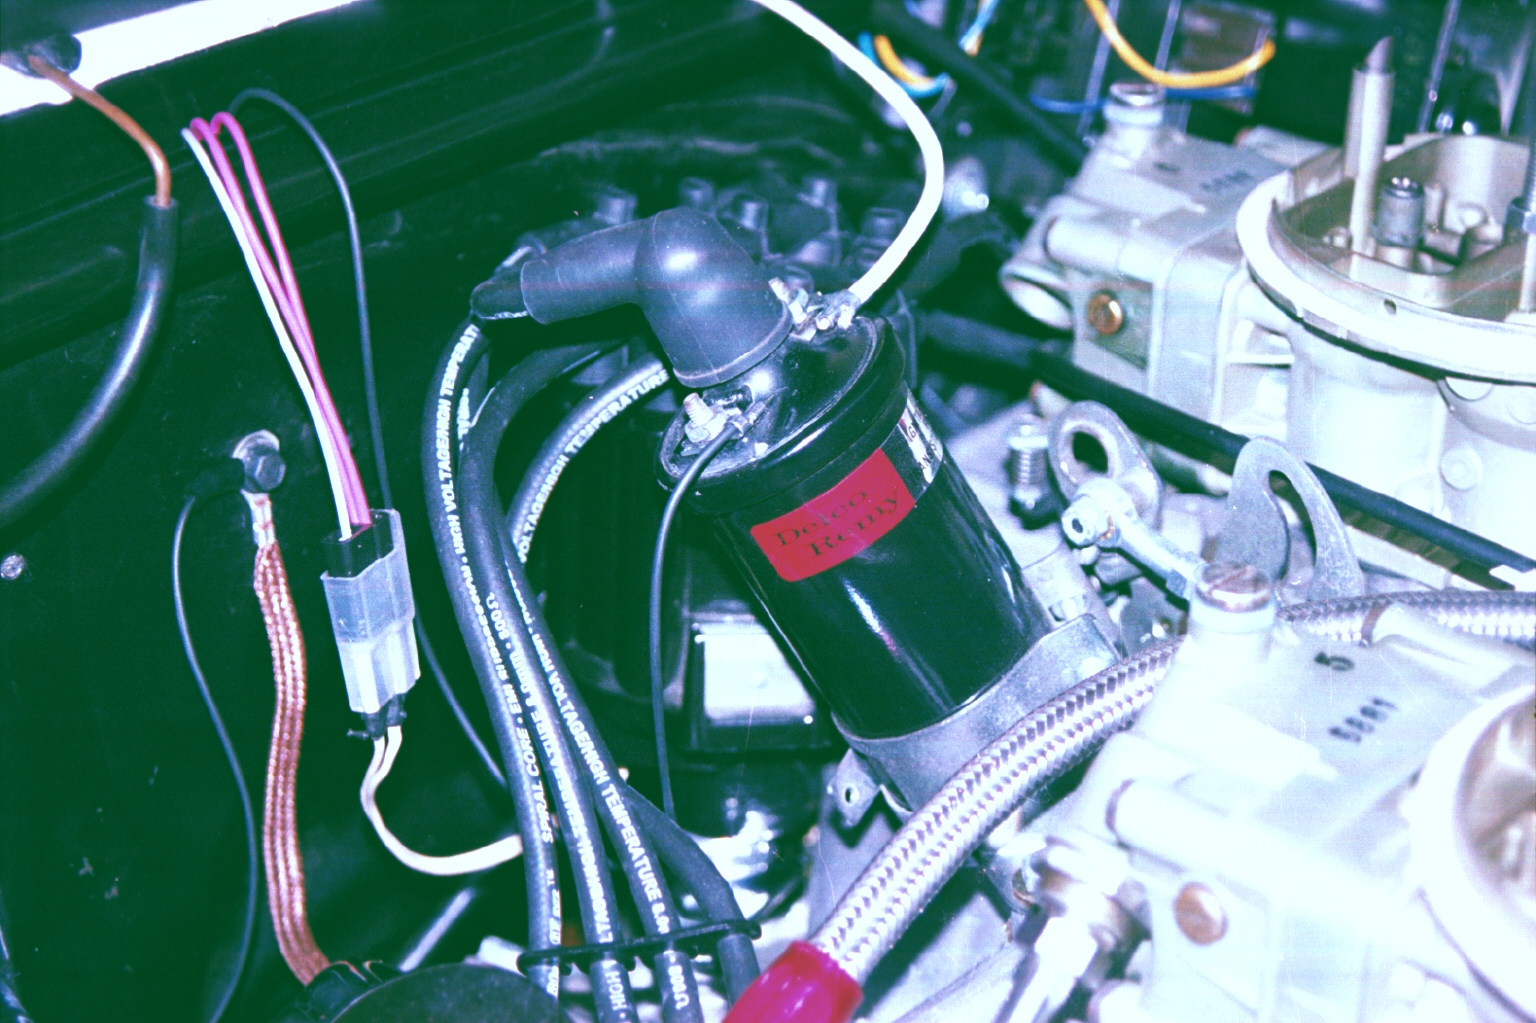 Gm Coil Wiring | Wiring Diagram - Chevy Ignition Coil Wiring Diagram